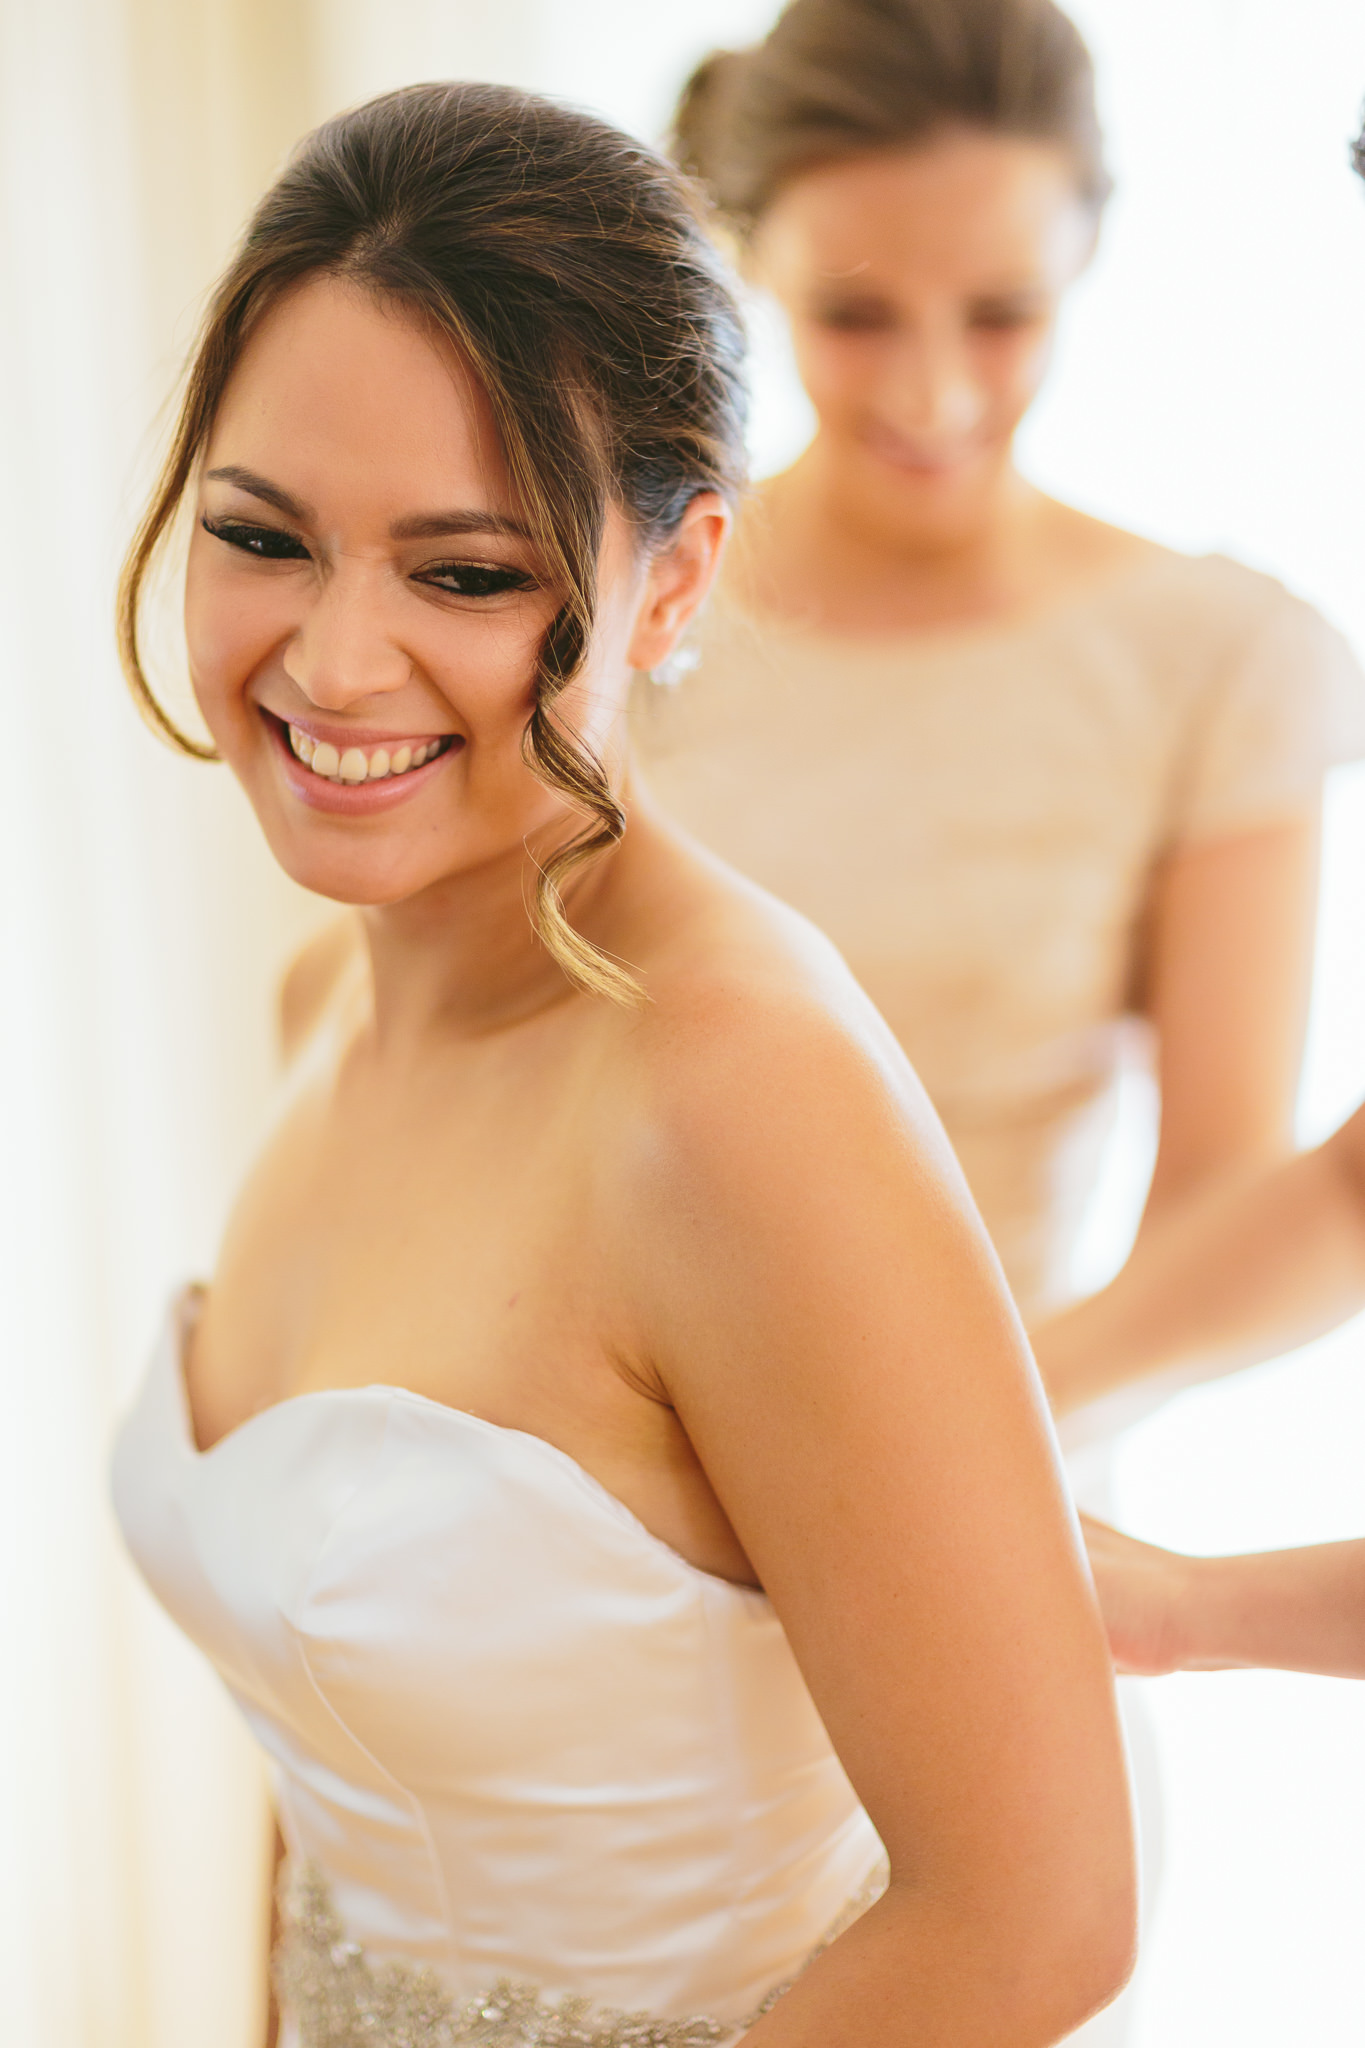 Bride getting zipped into dress